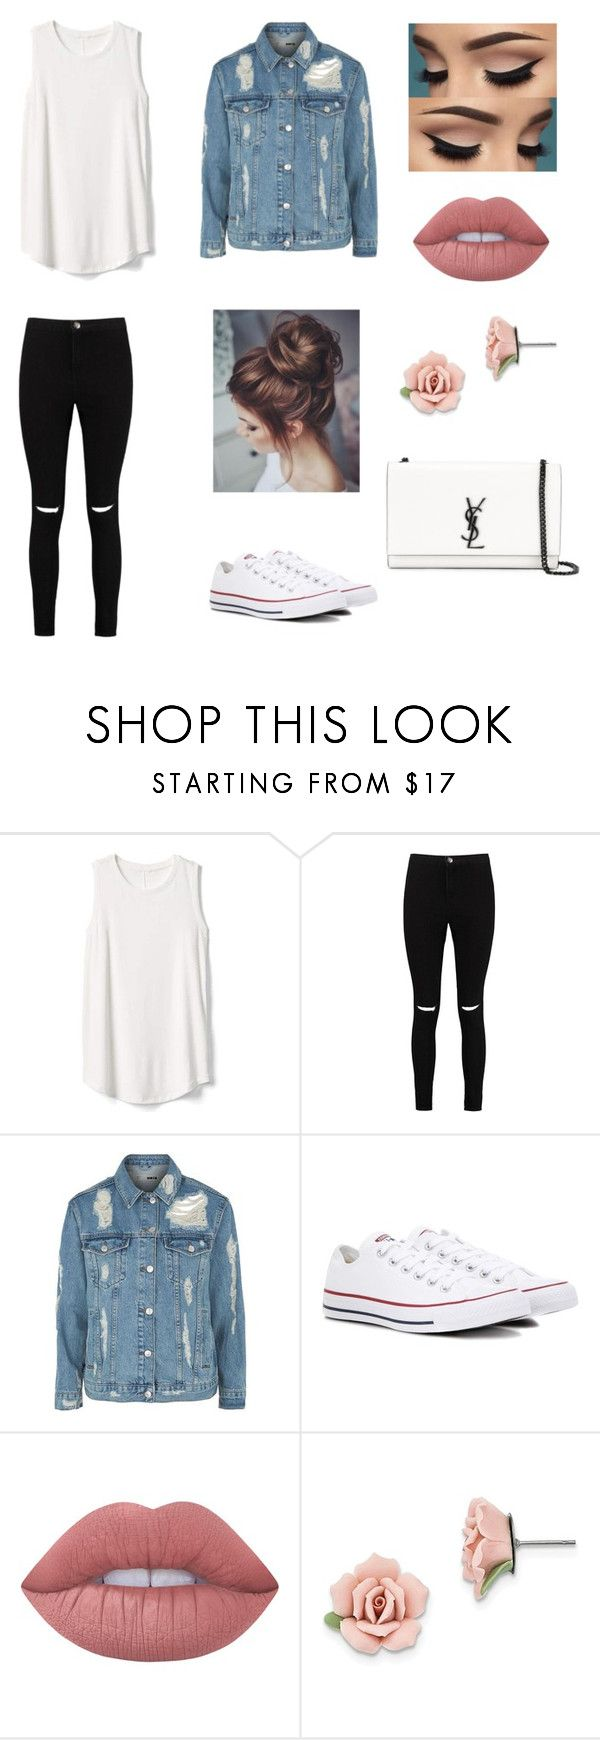 """Low-Life"" by elenialex ❤ liked on Polyvore featuring Gap, Boohoo, Topshop, Converse, Lime Crime, 1928 and Yves Saint Laurent"